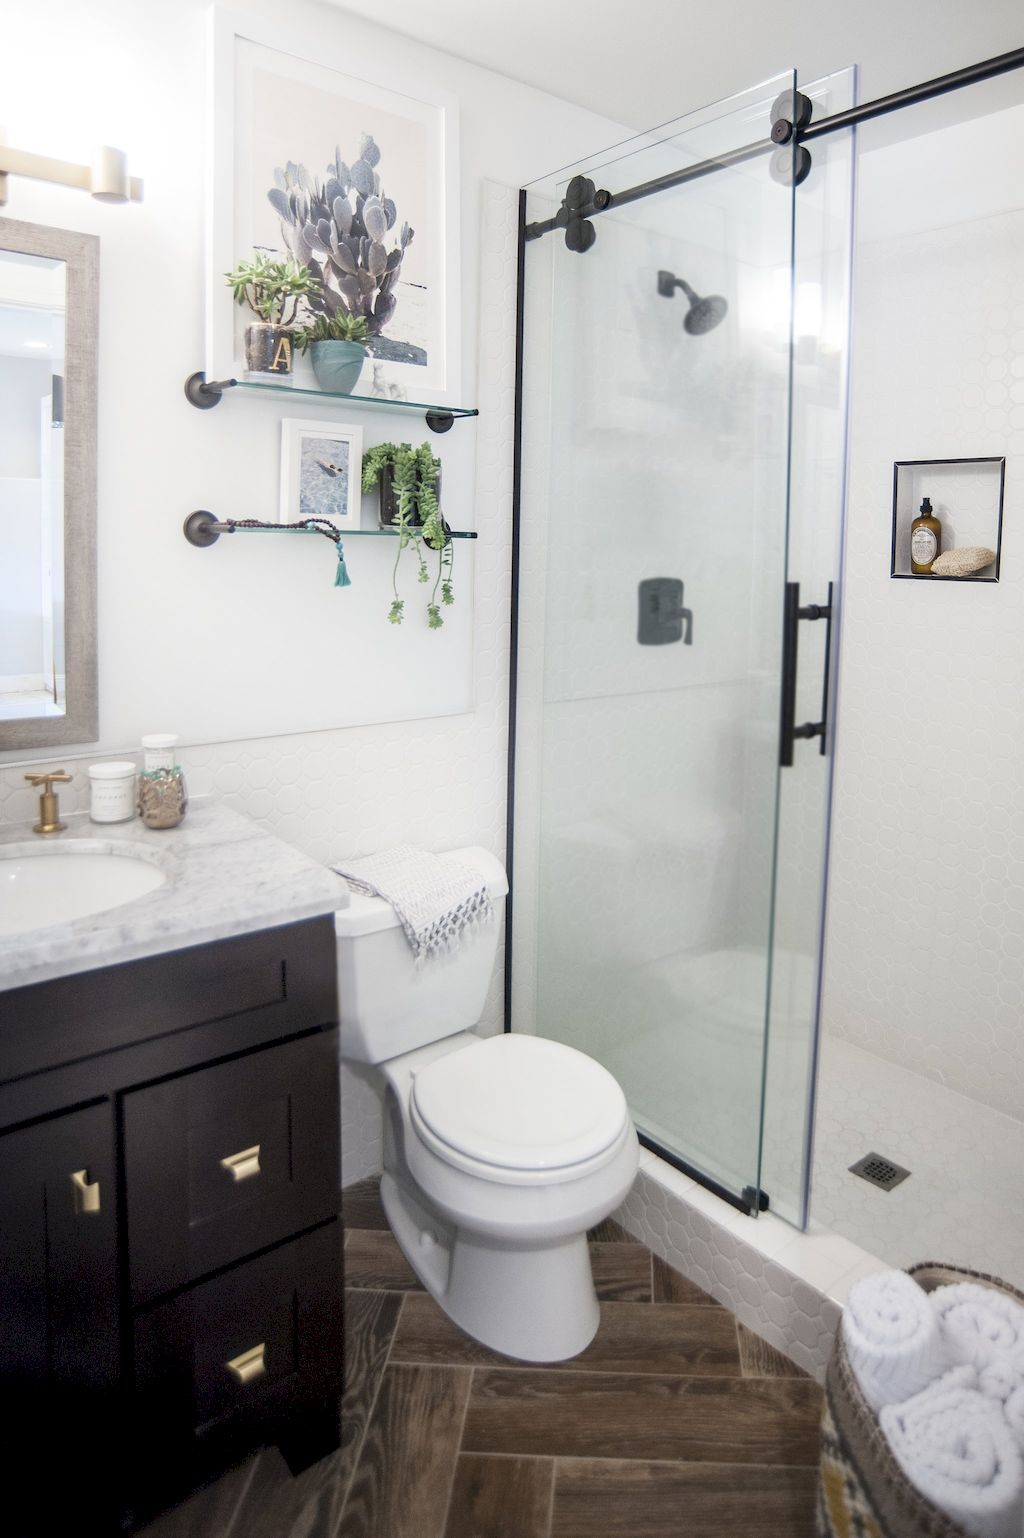 See Popsugar s Home Editor stunning small bathroom remodel designed  entirely online Check out the before and after transformation 55 Cool Small Master Bathroom Remodel Ideas bathrooms